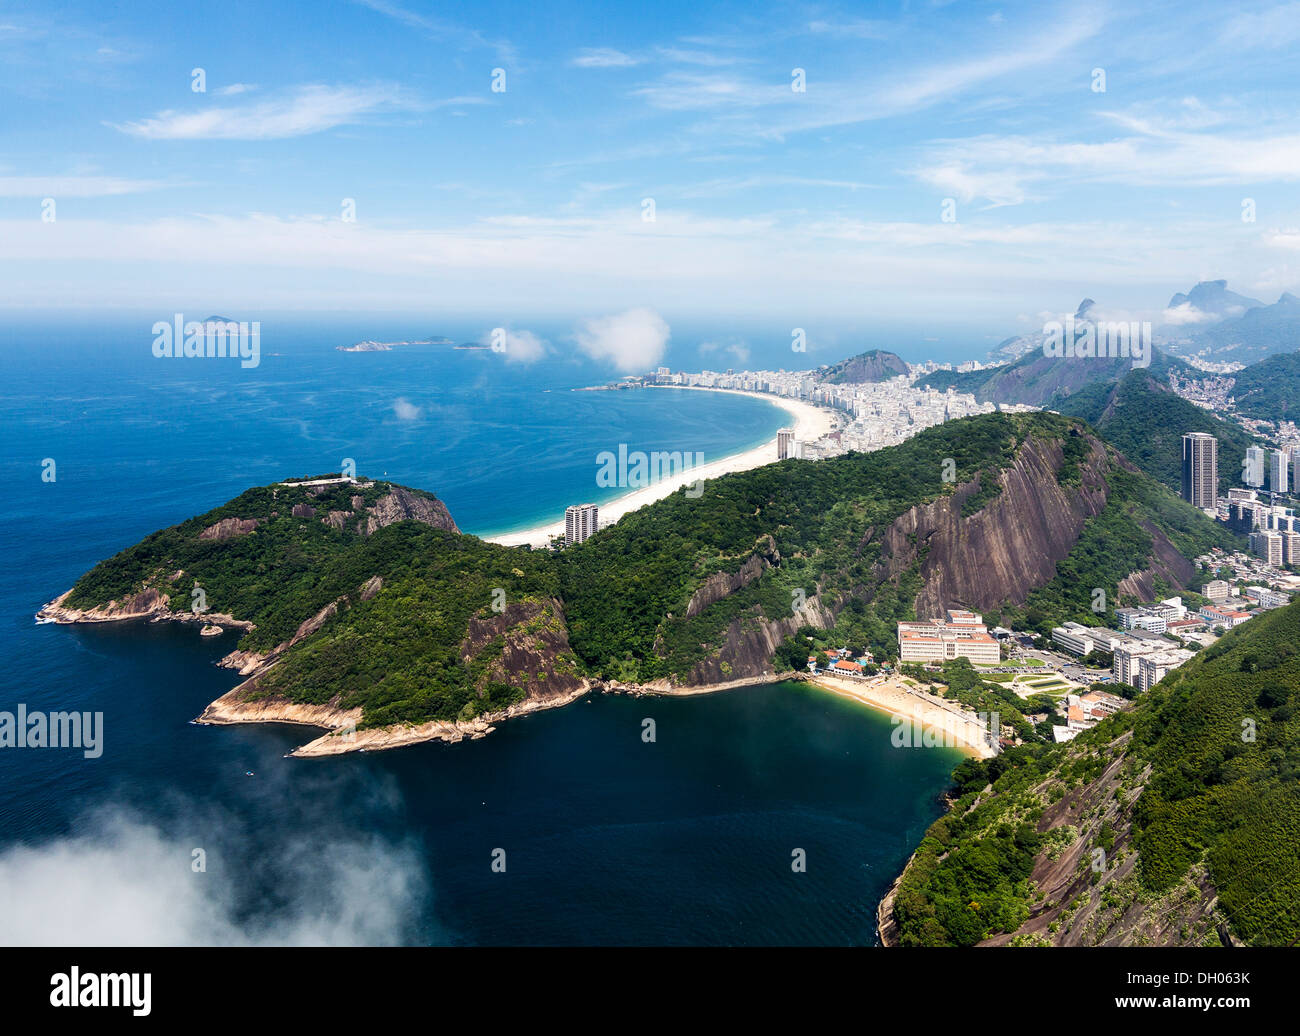 Aerial view of Rio de Janeiro and coastline, Brazil with Copacabana beach in distance - Stock Image